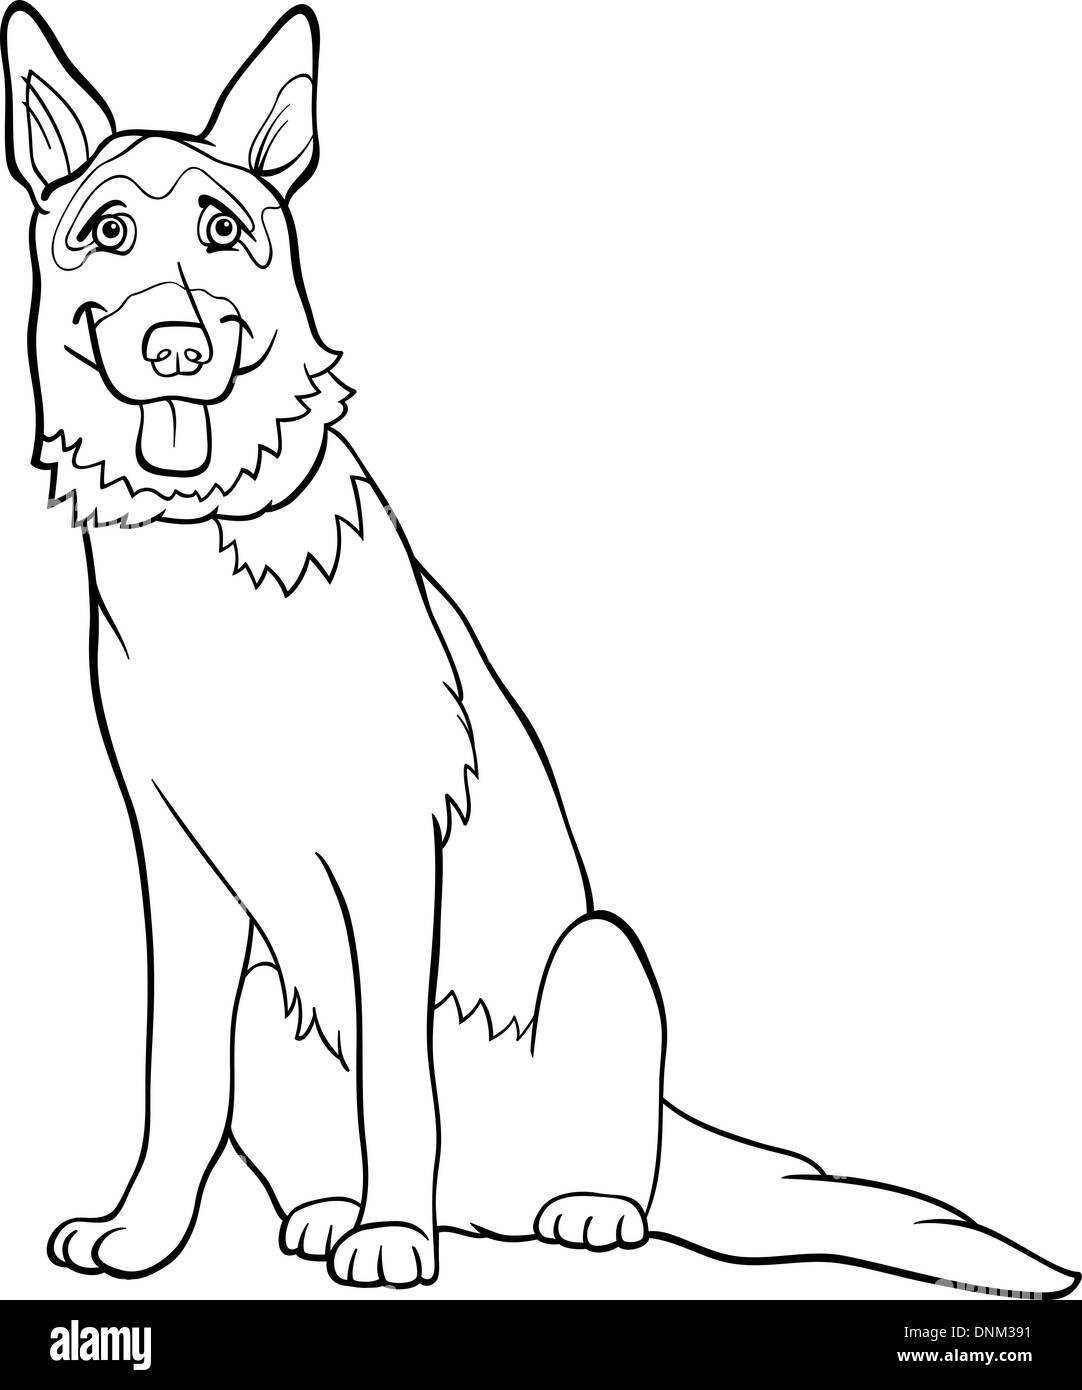 Black and White Cartoon Illustration of Funny German Shepherd Purebred Dog for Coloring Book - Stock Vector